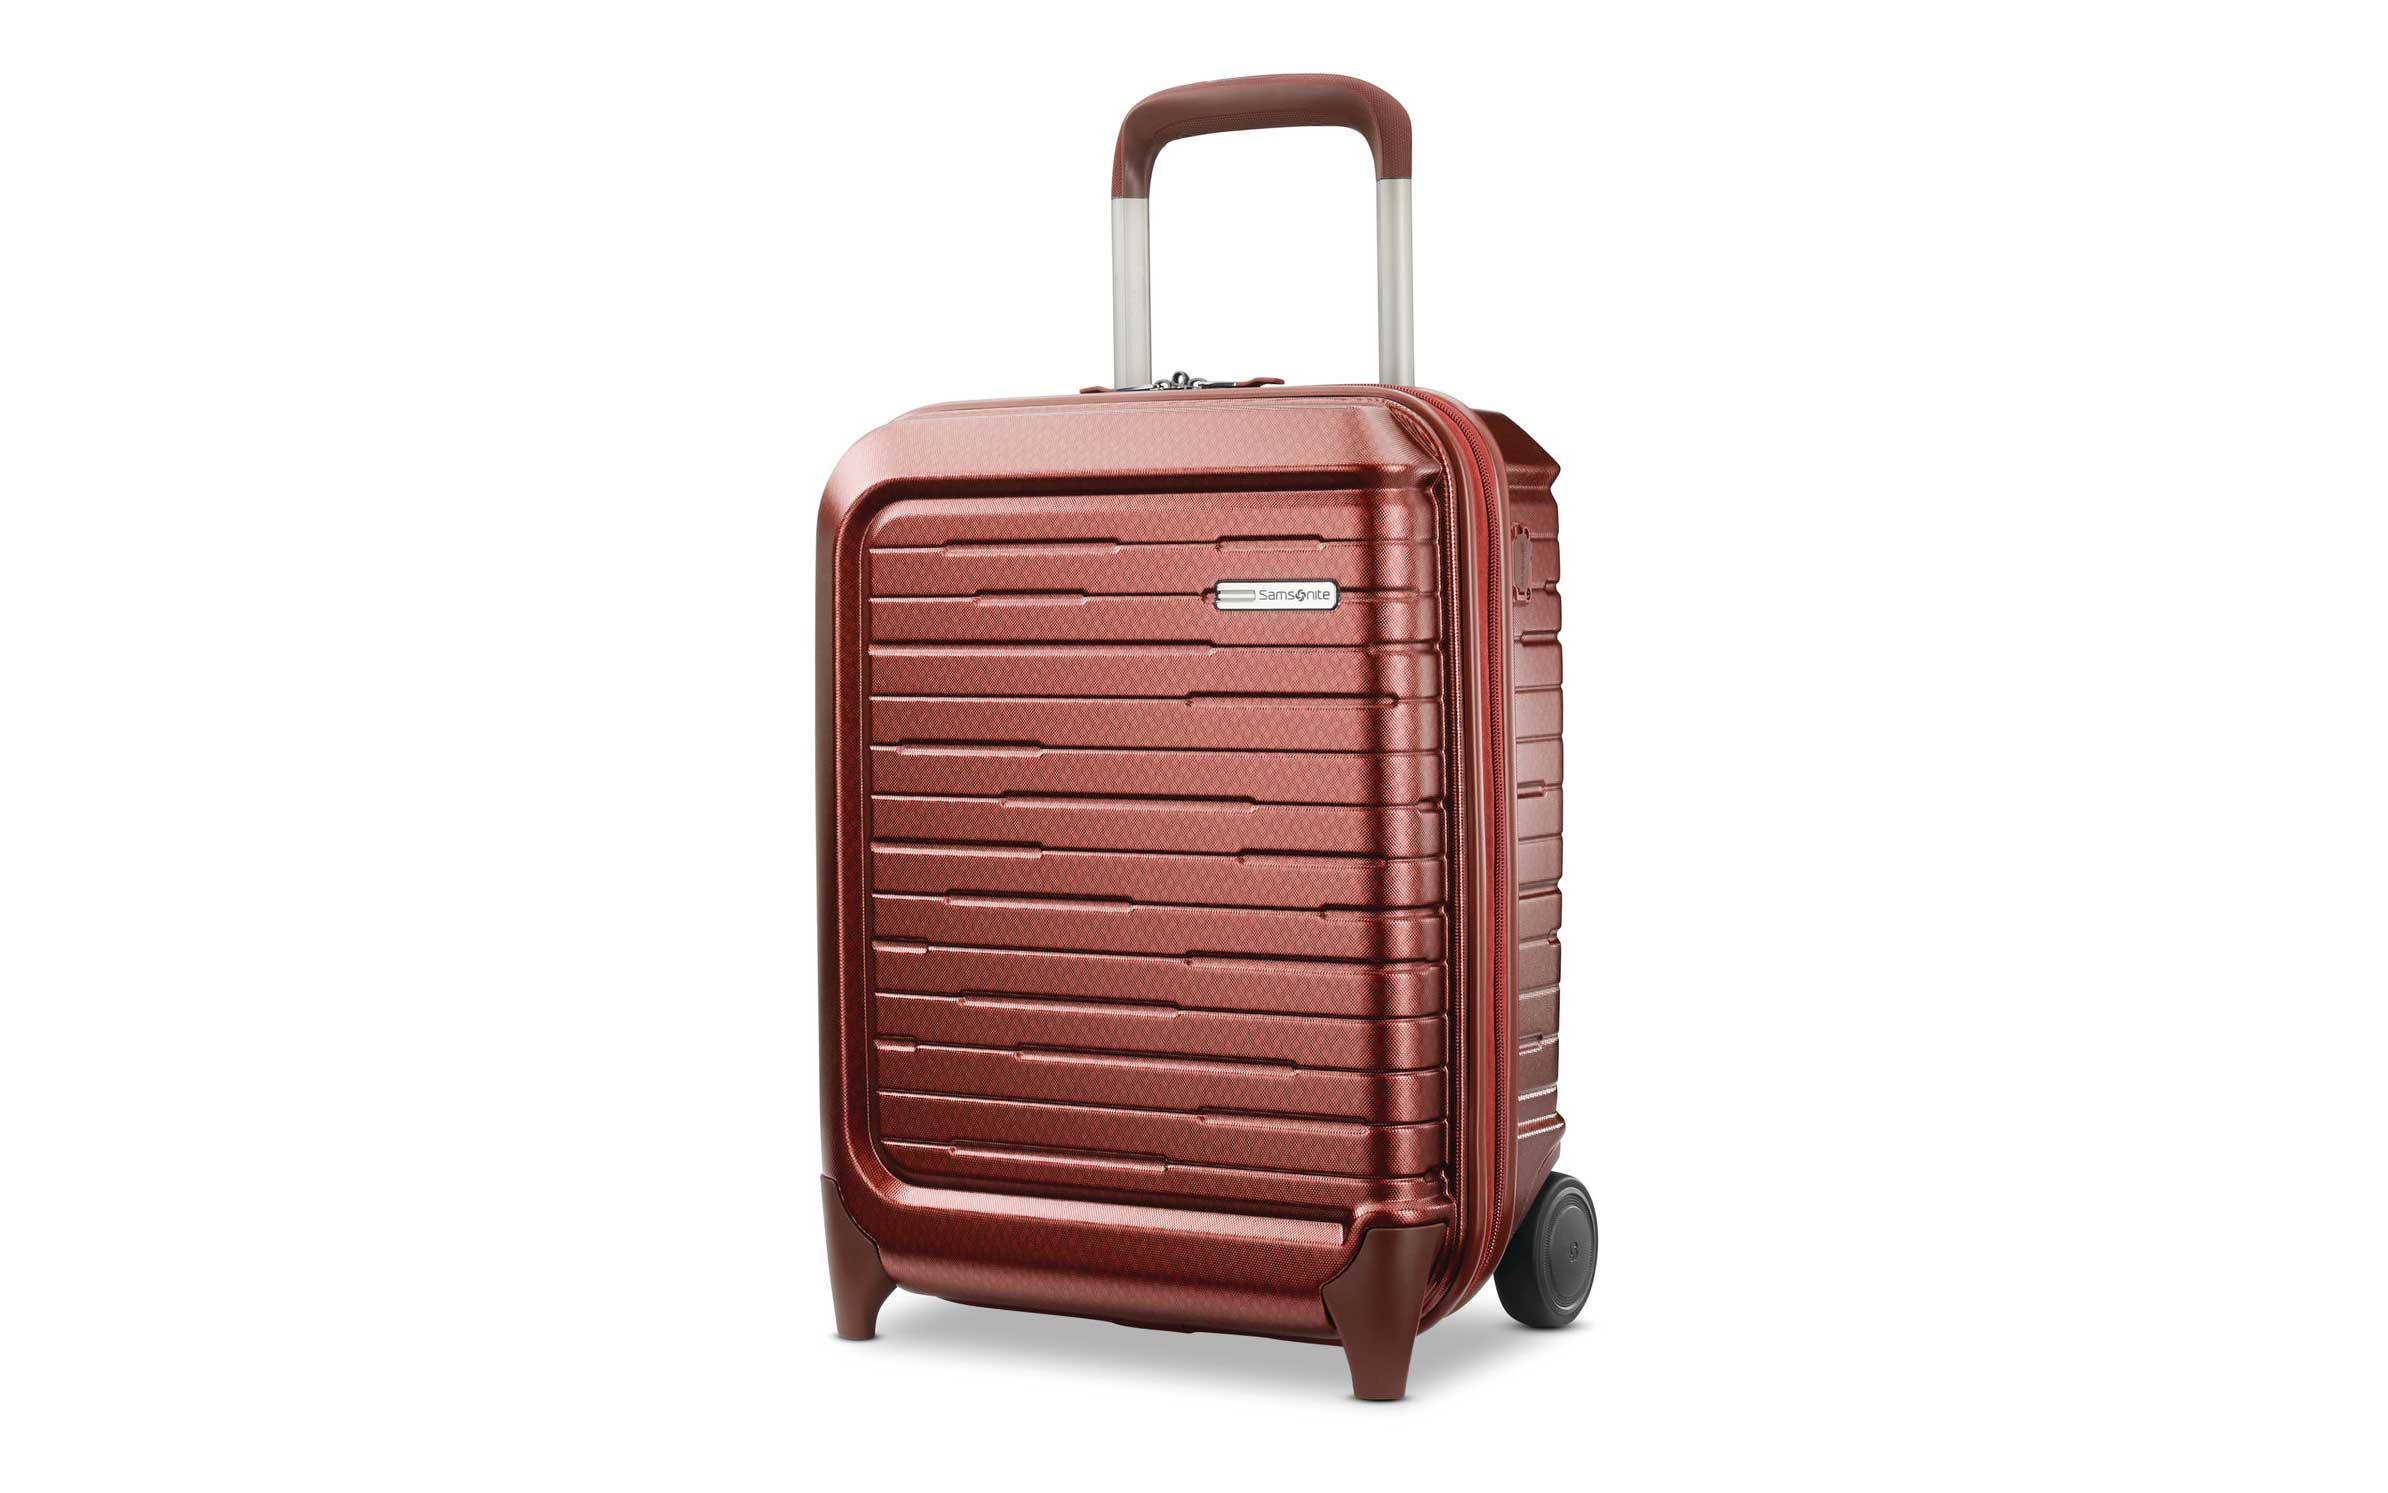 A Carry On Luggage Size Guide By Airline Travel Leisure